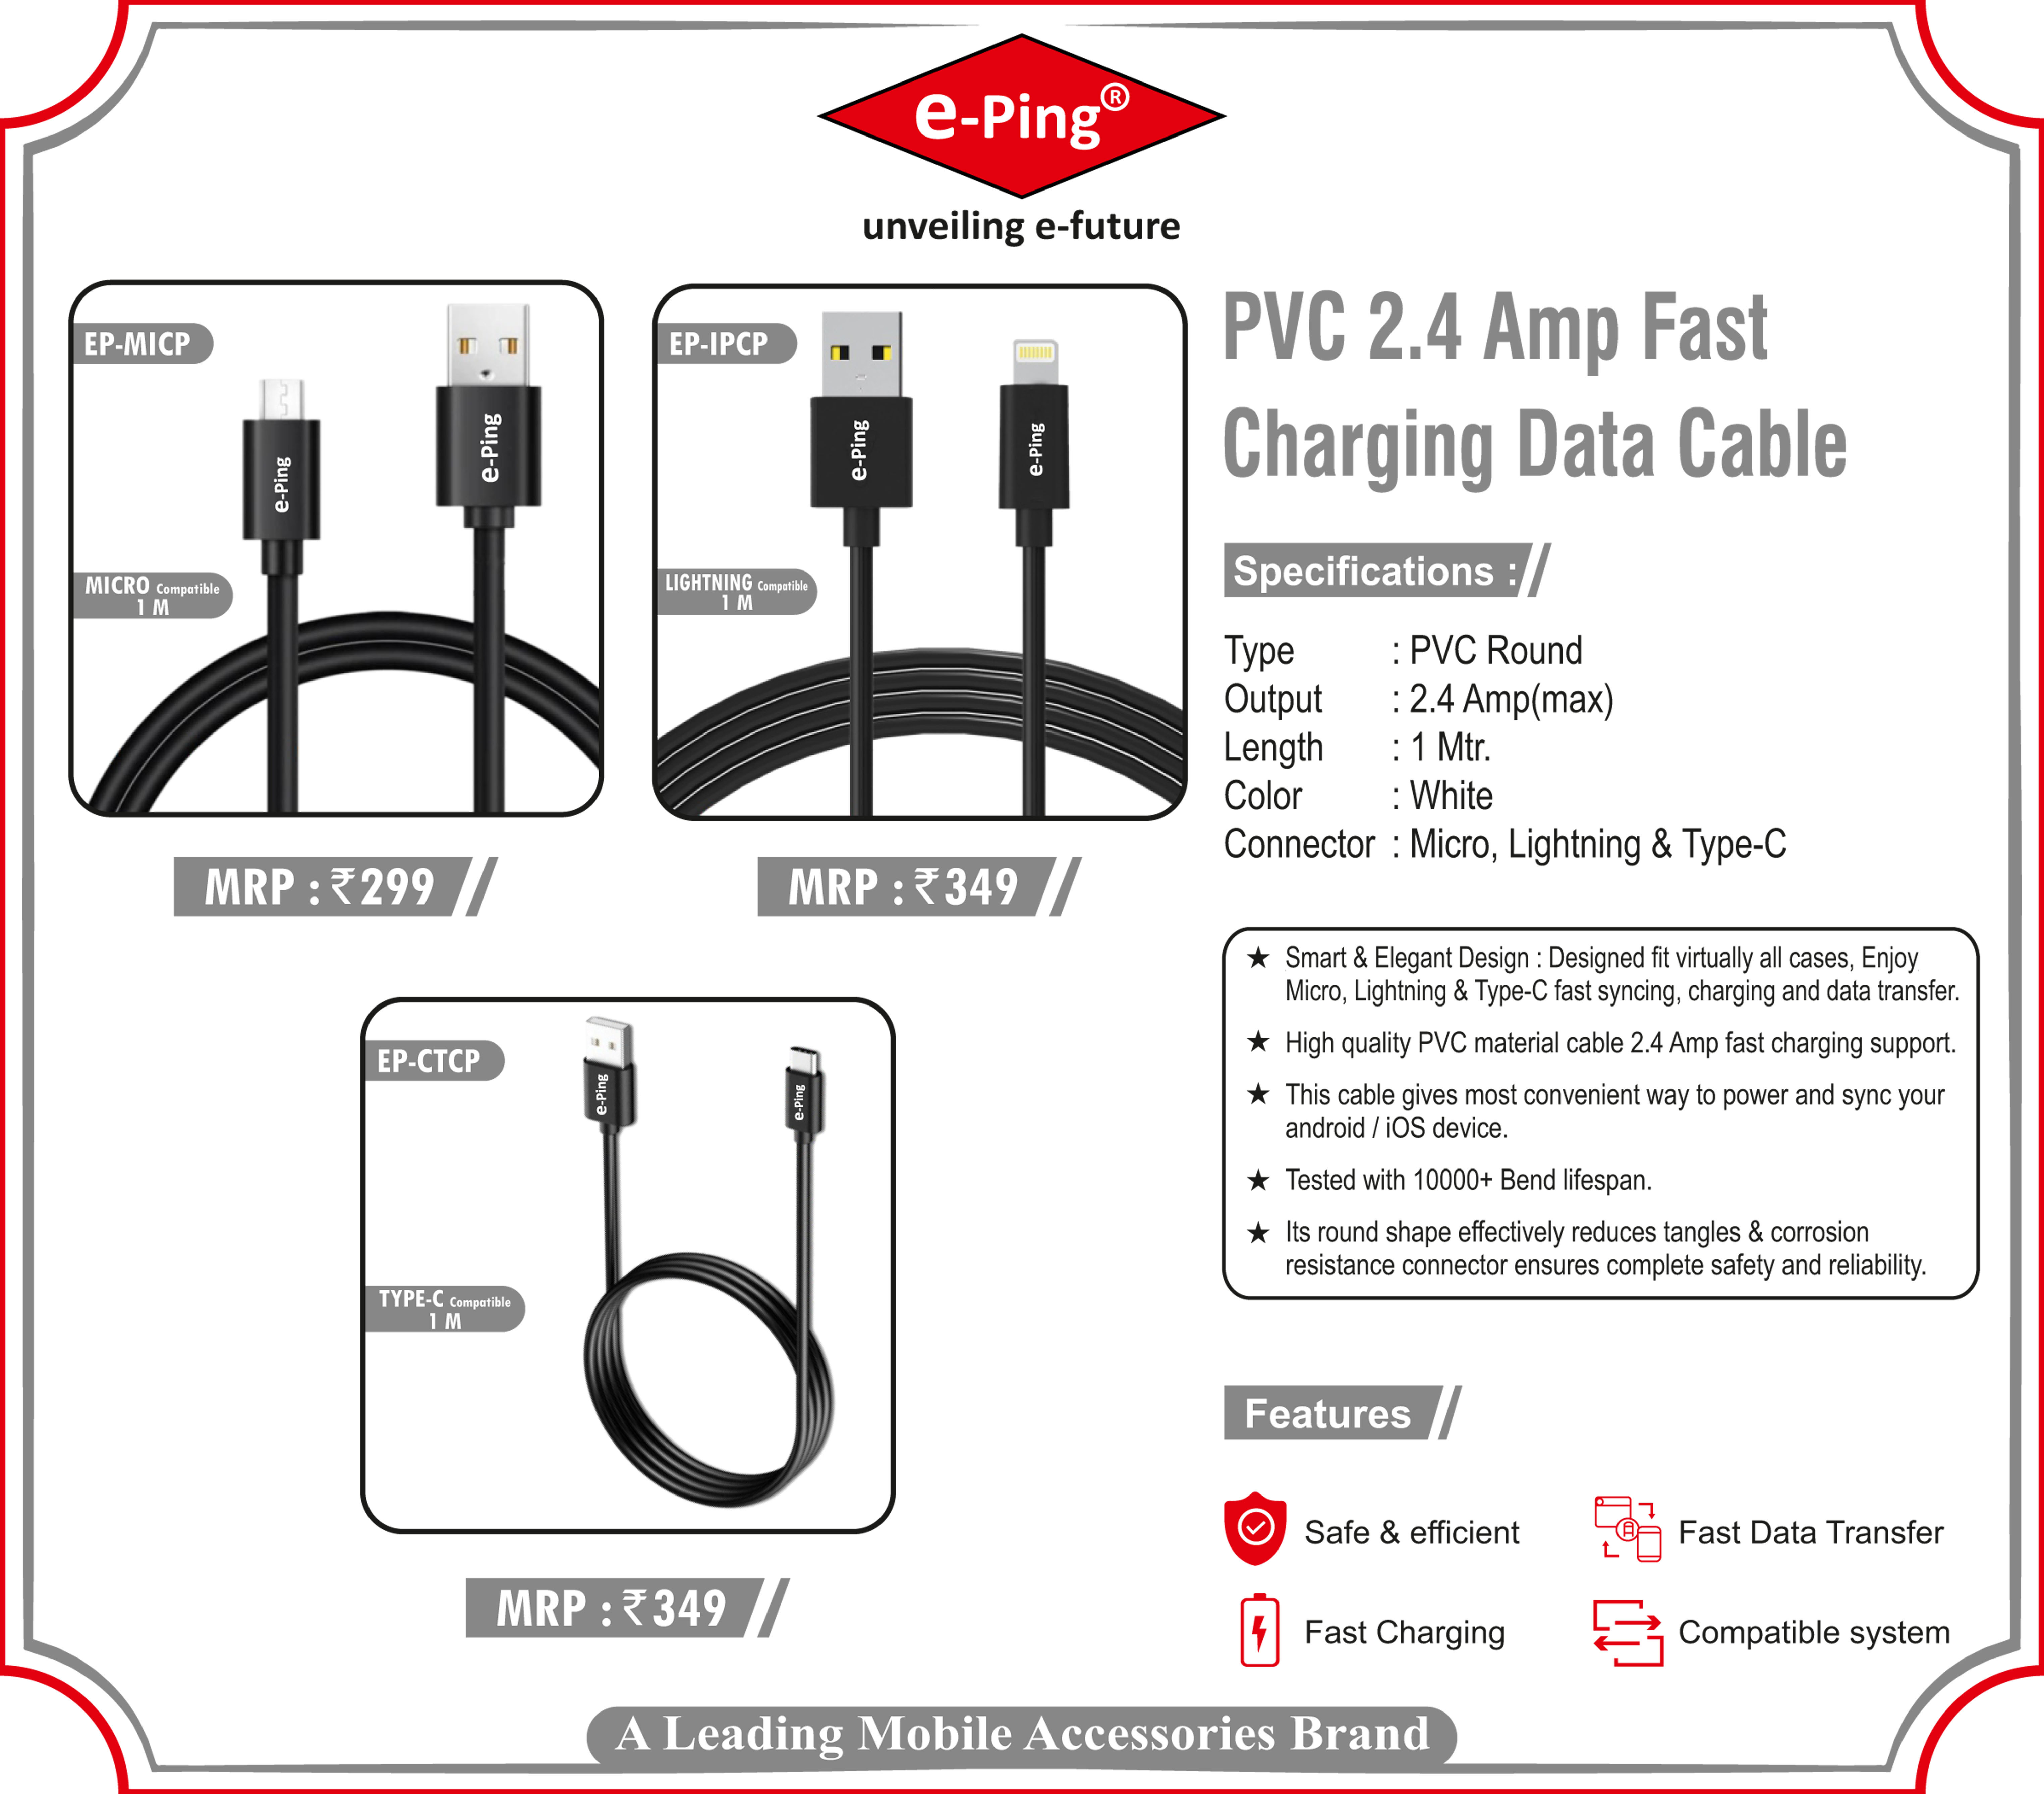 Pvc 2.4 Amp Fast Charging Data Cable Lightning